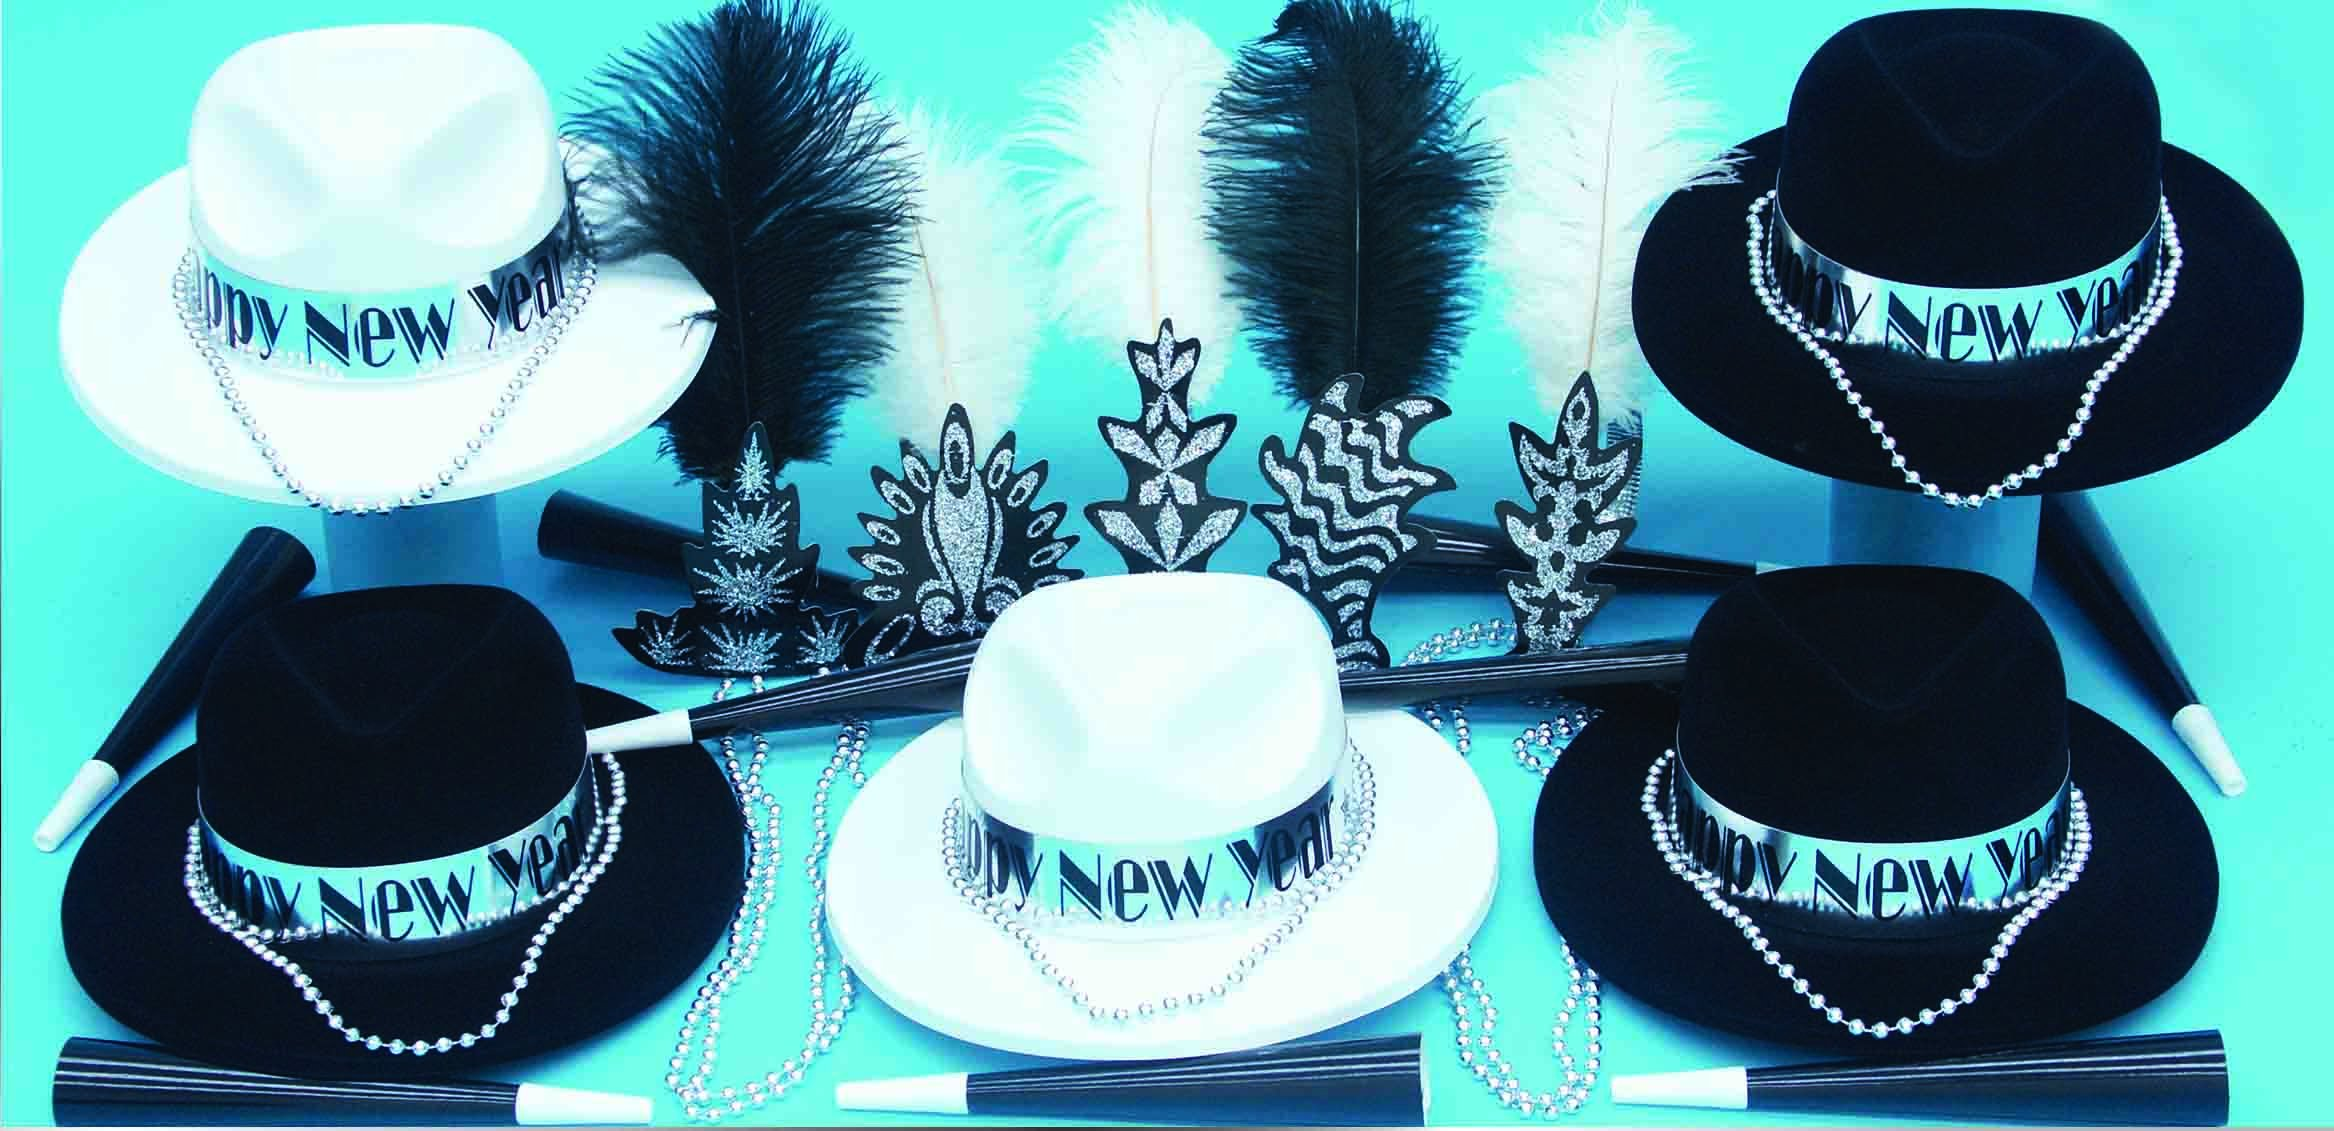 Roaring 20's New Years Party Kit for 50